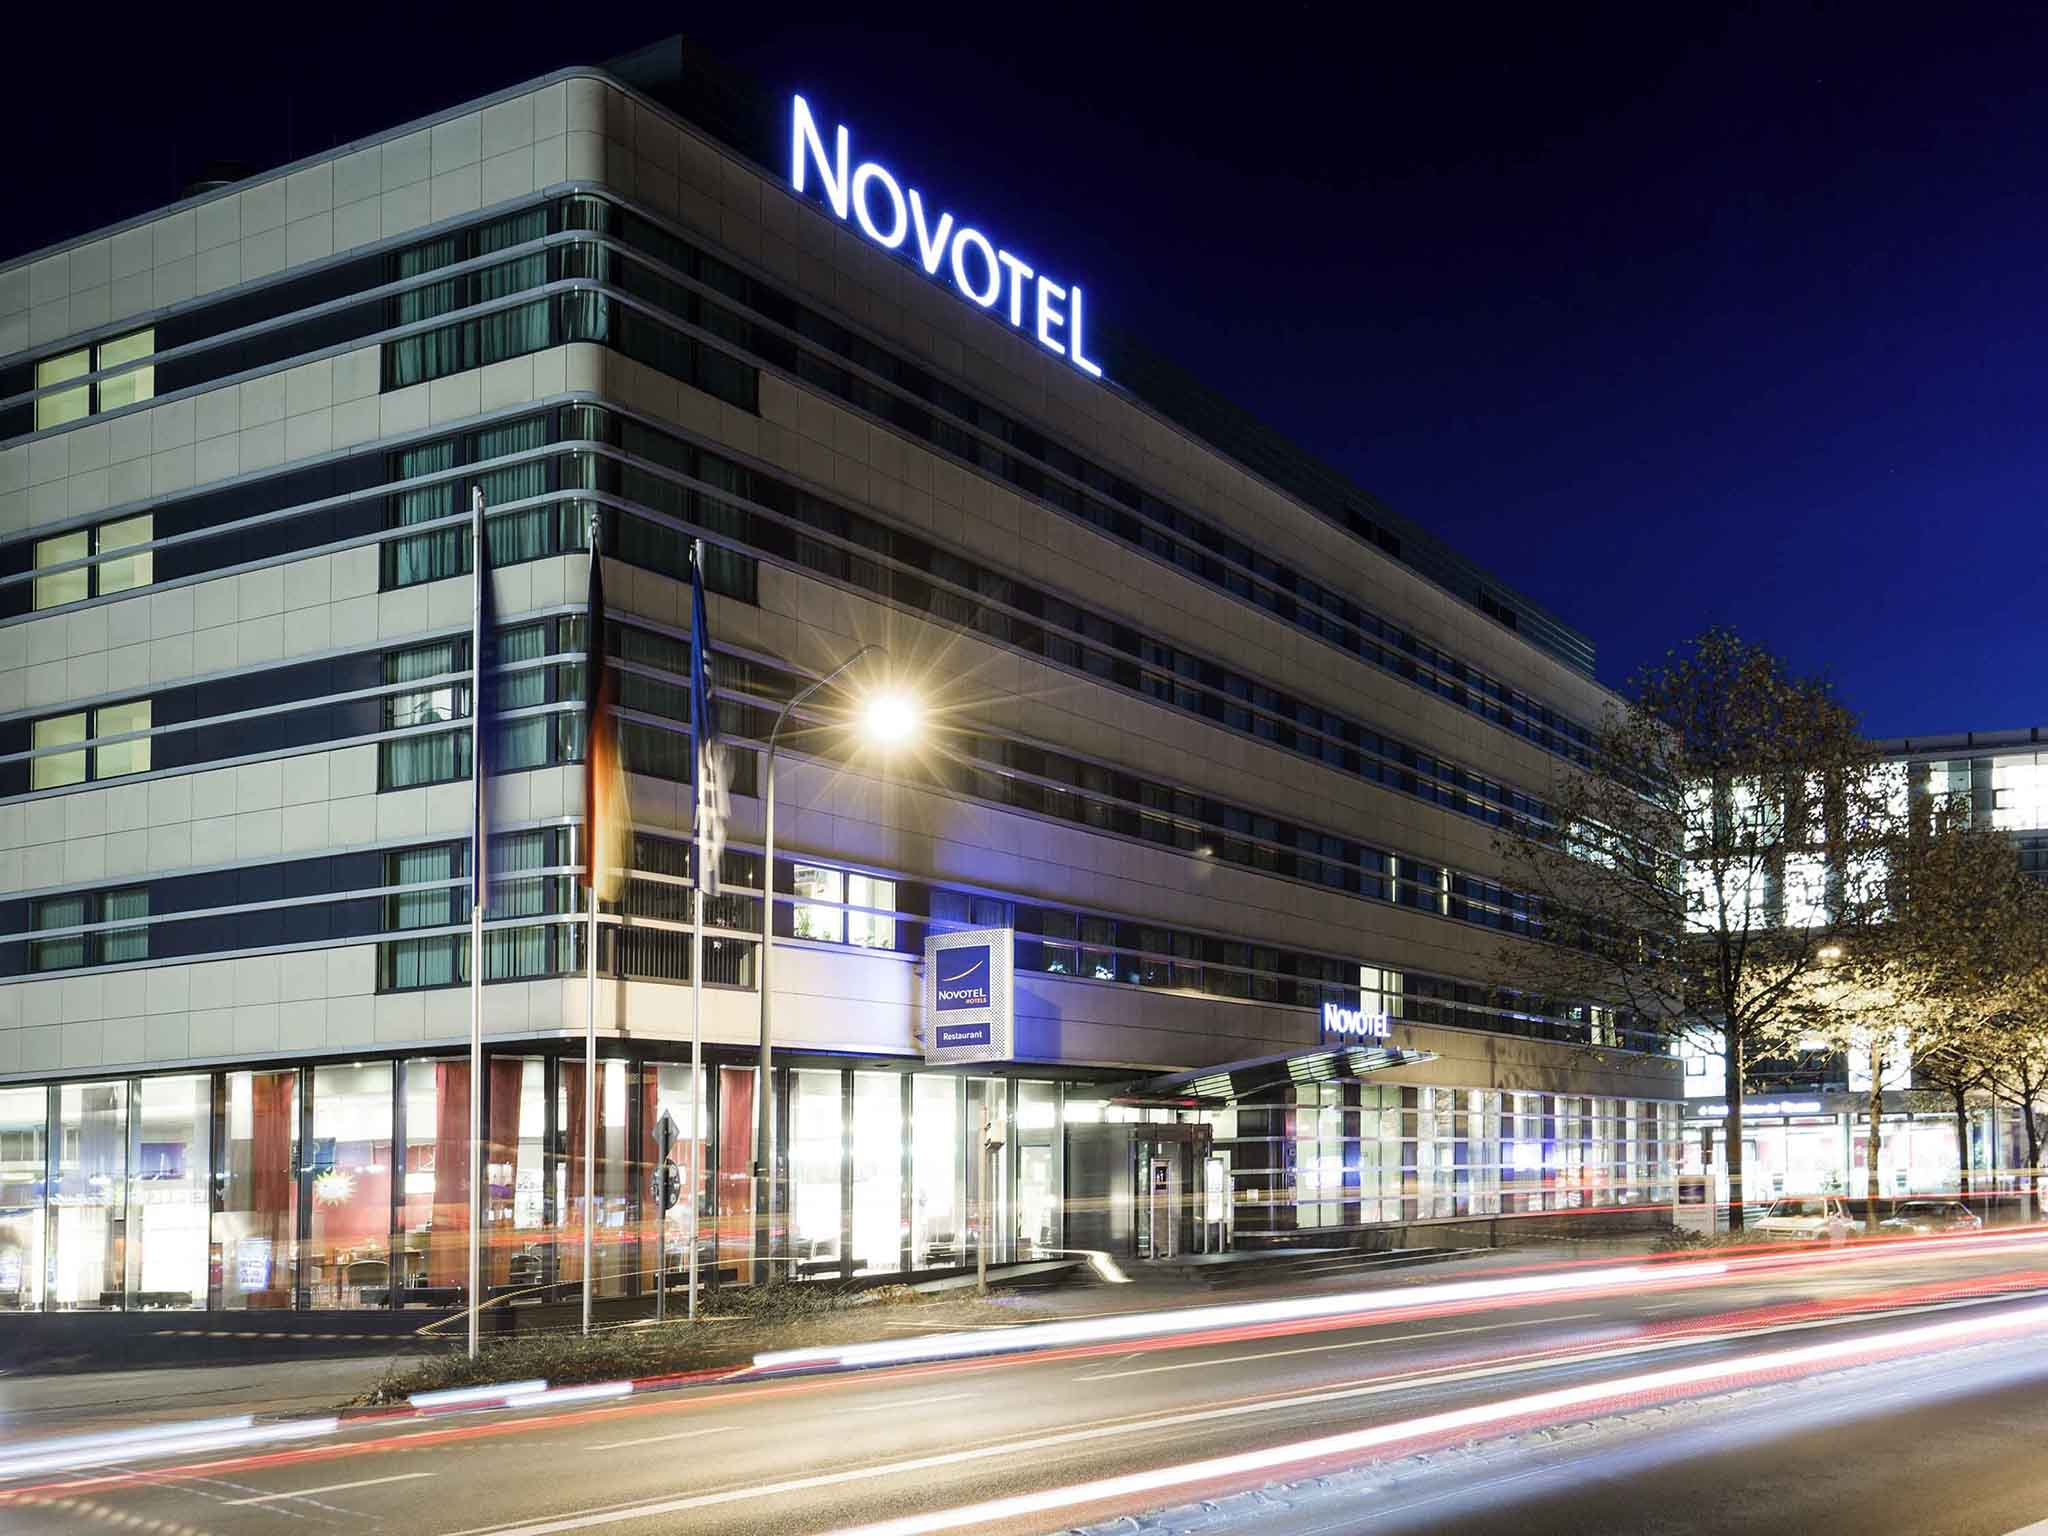 Hotel Novotel Aachen City Book your hotel now Free Wifi